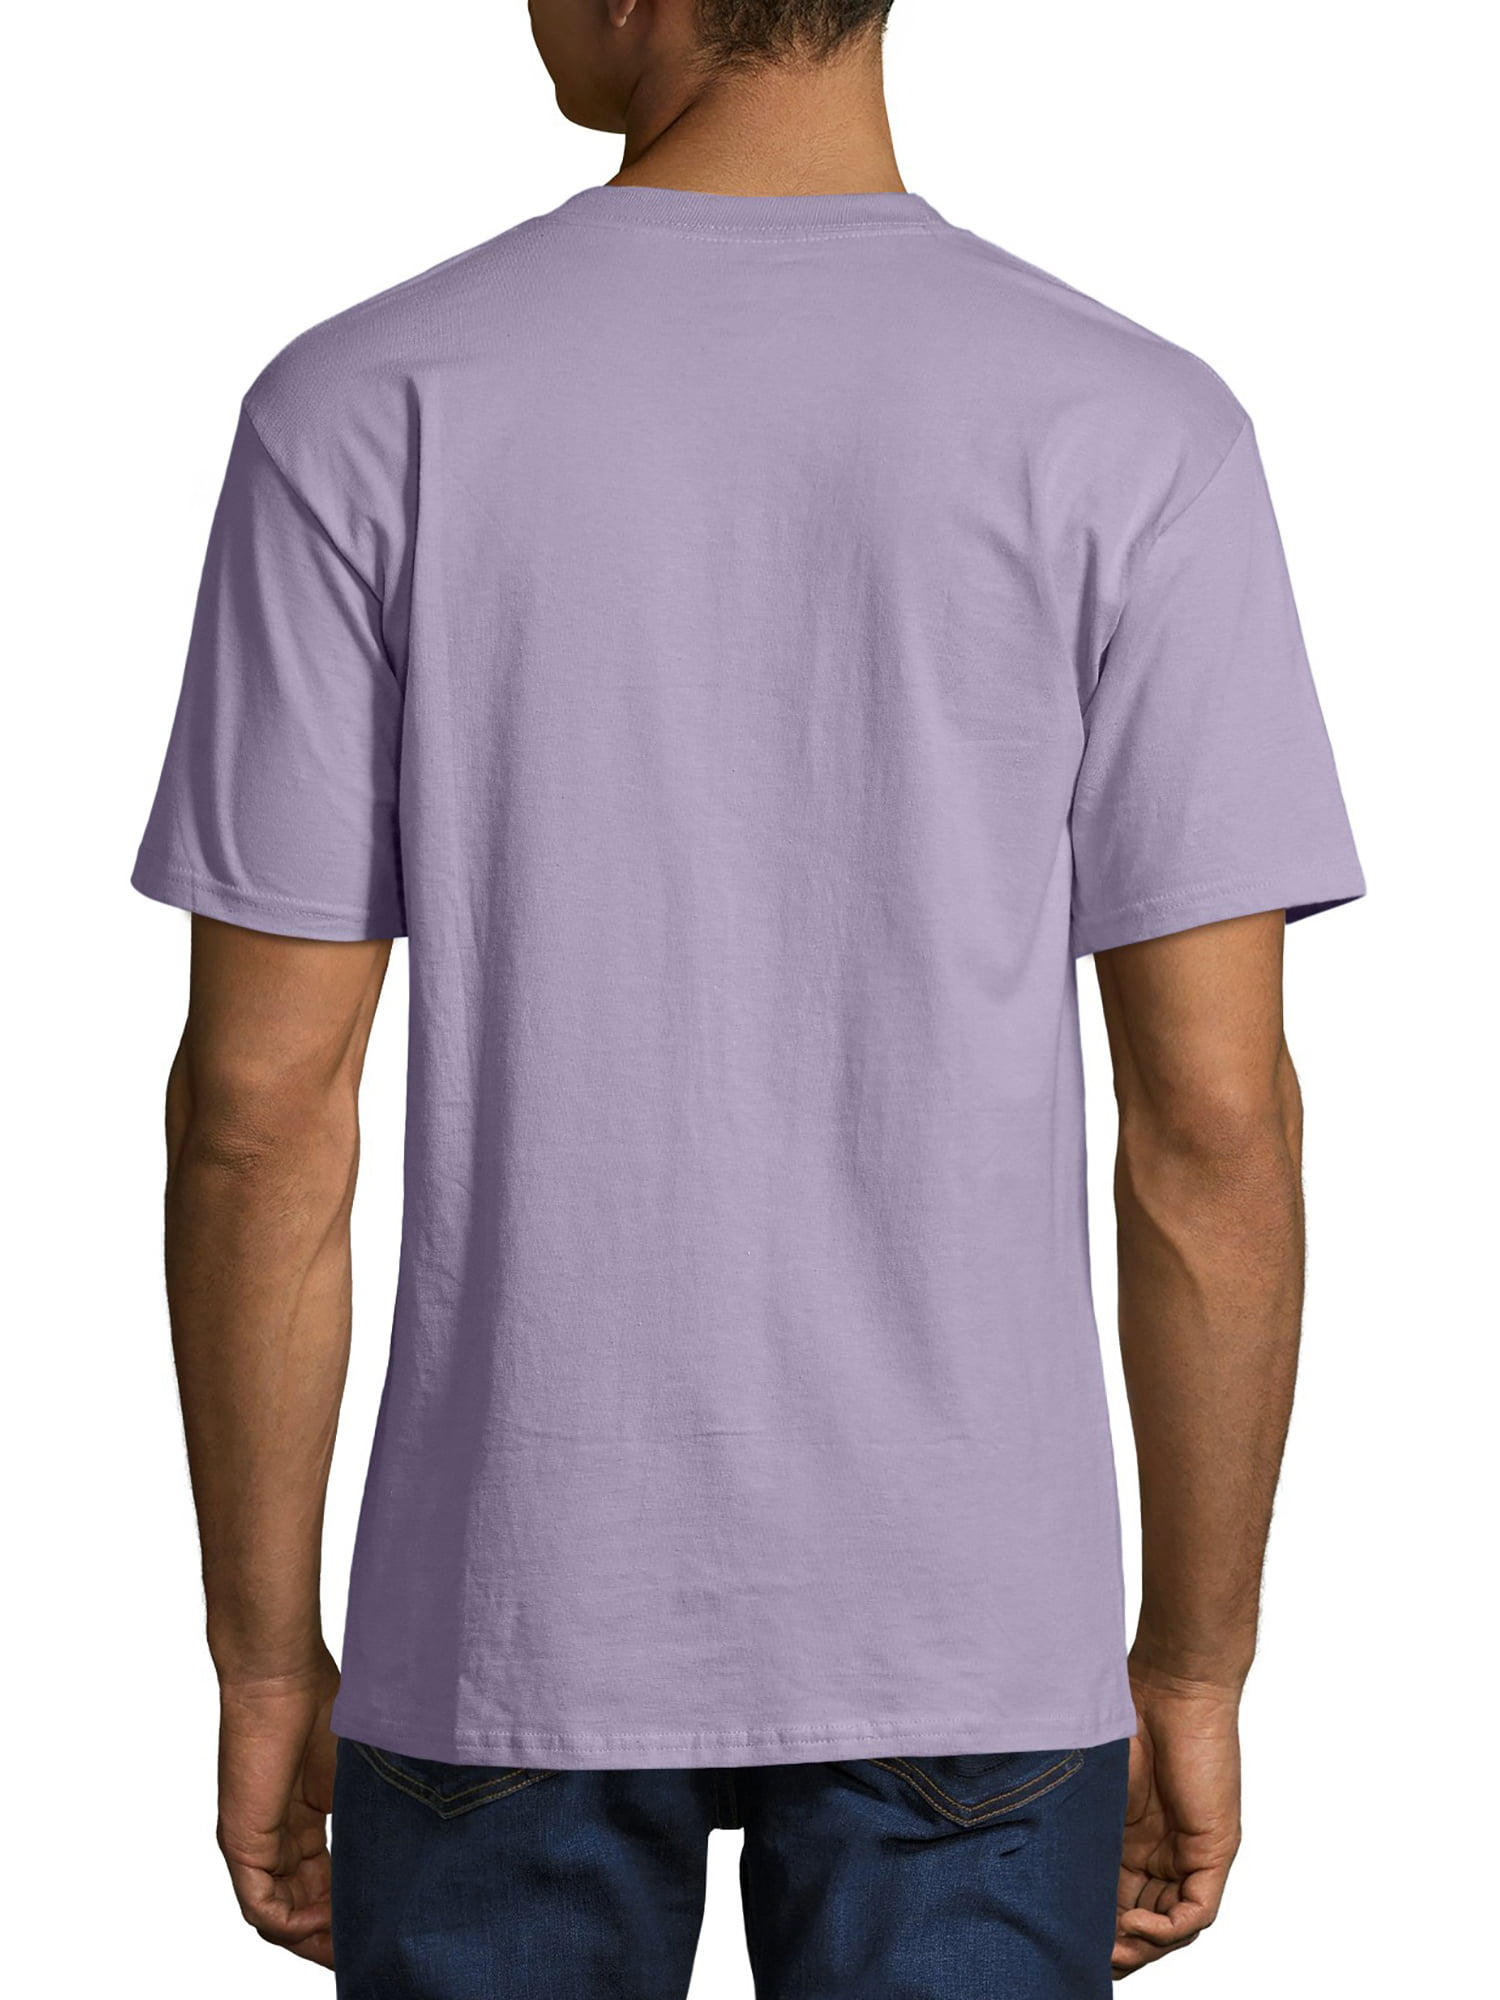 6XL Just Here For Anime Mens Tee Shirt Pick Size /& Color Small